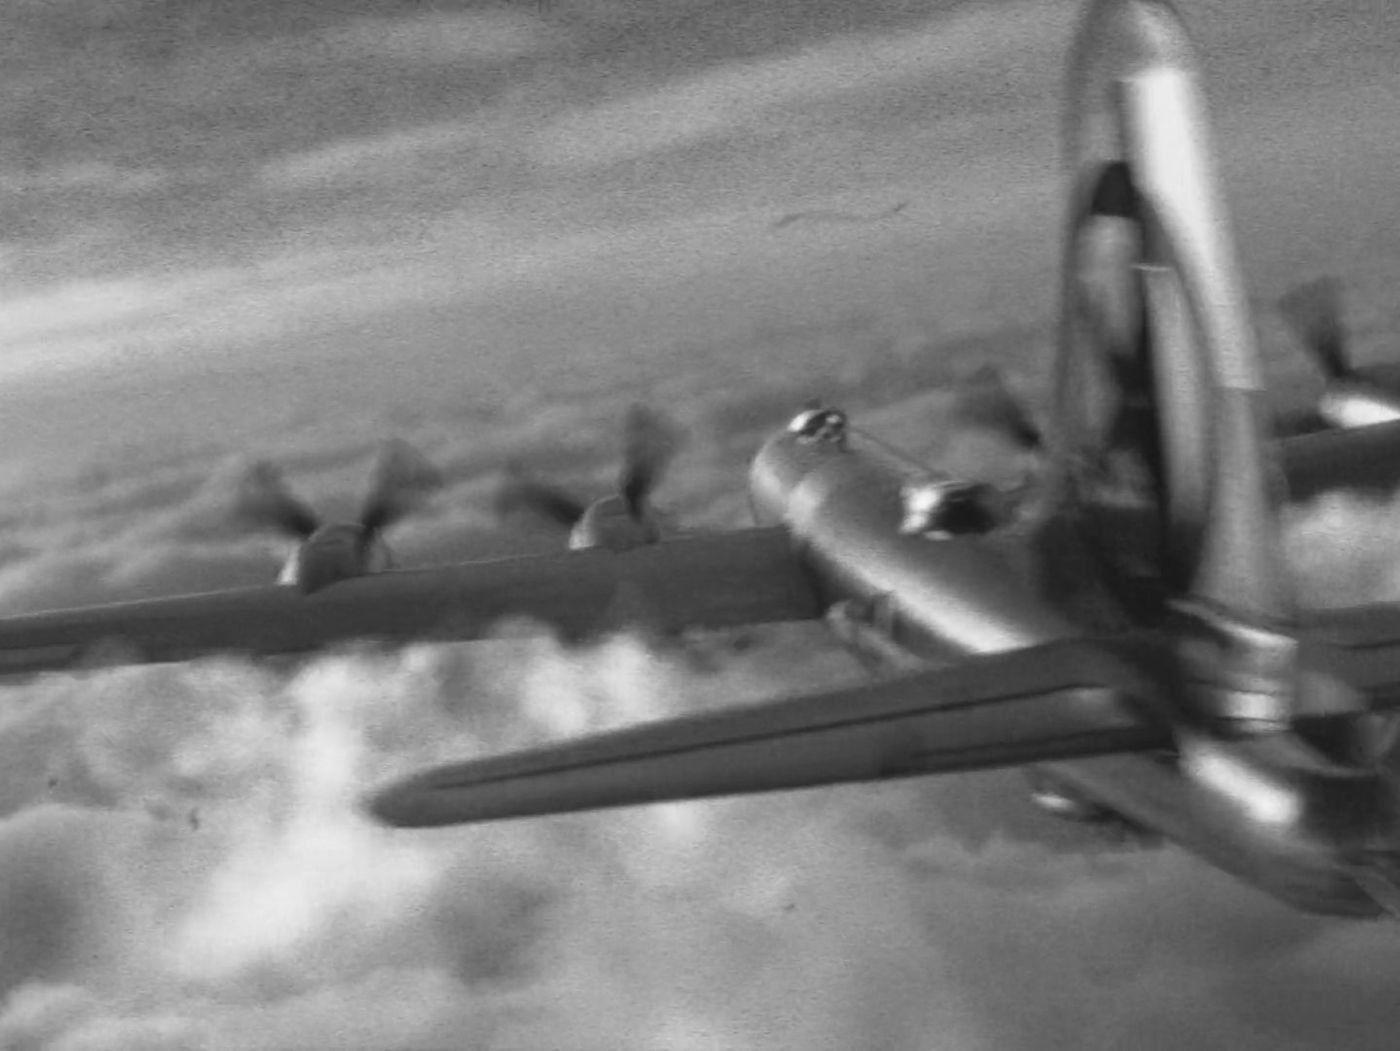 B29 WWII airplane, with fluids simulation.